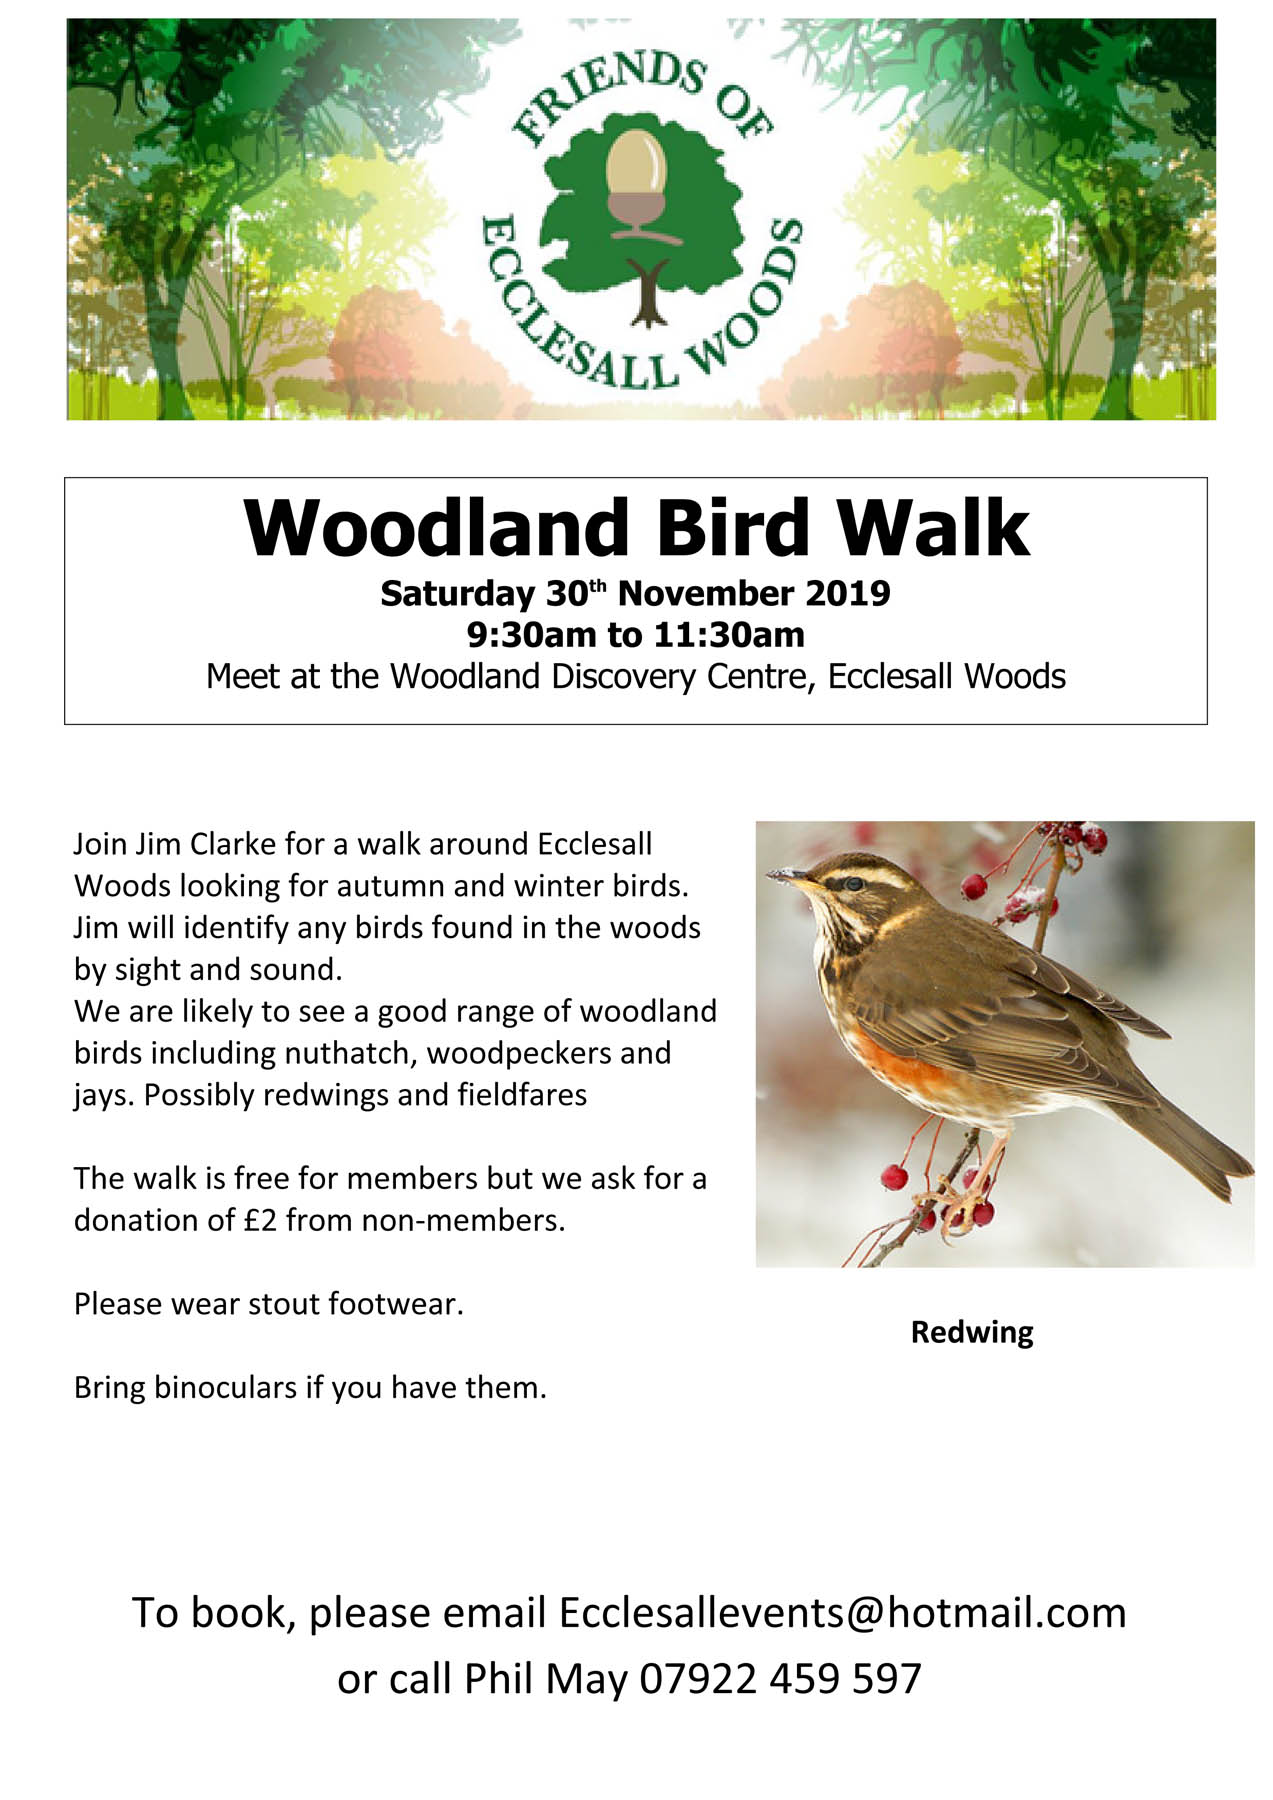 Postponed: bird walk Saturday 23rd – now Saturday 30th November